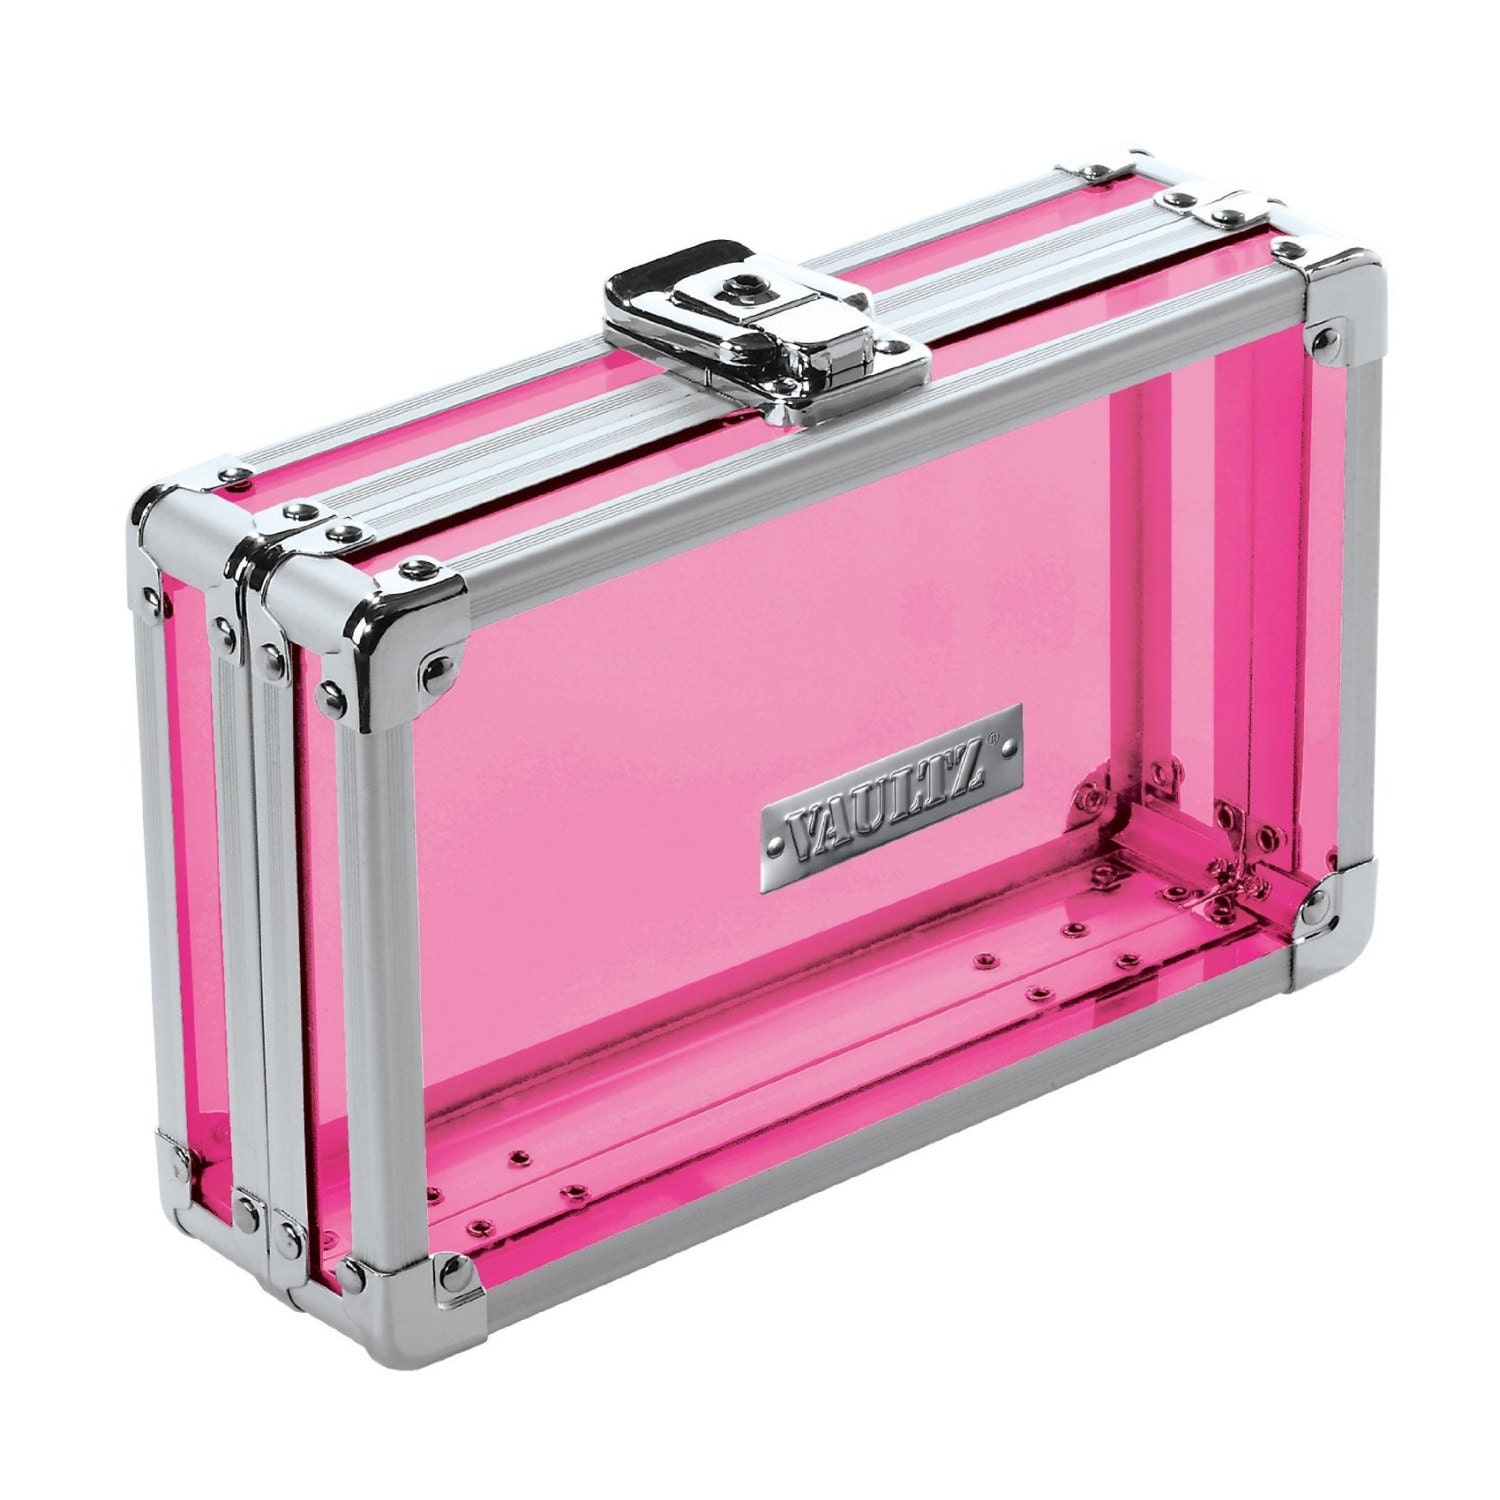 pencil box Get free 1 - 2 day shipping on vaultz lock it up locking pencil box shop cvs  now to find great deals and read thousands of customer reviews.